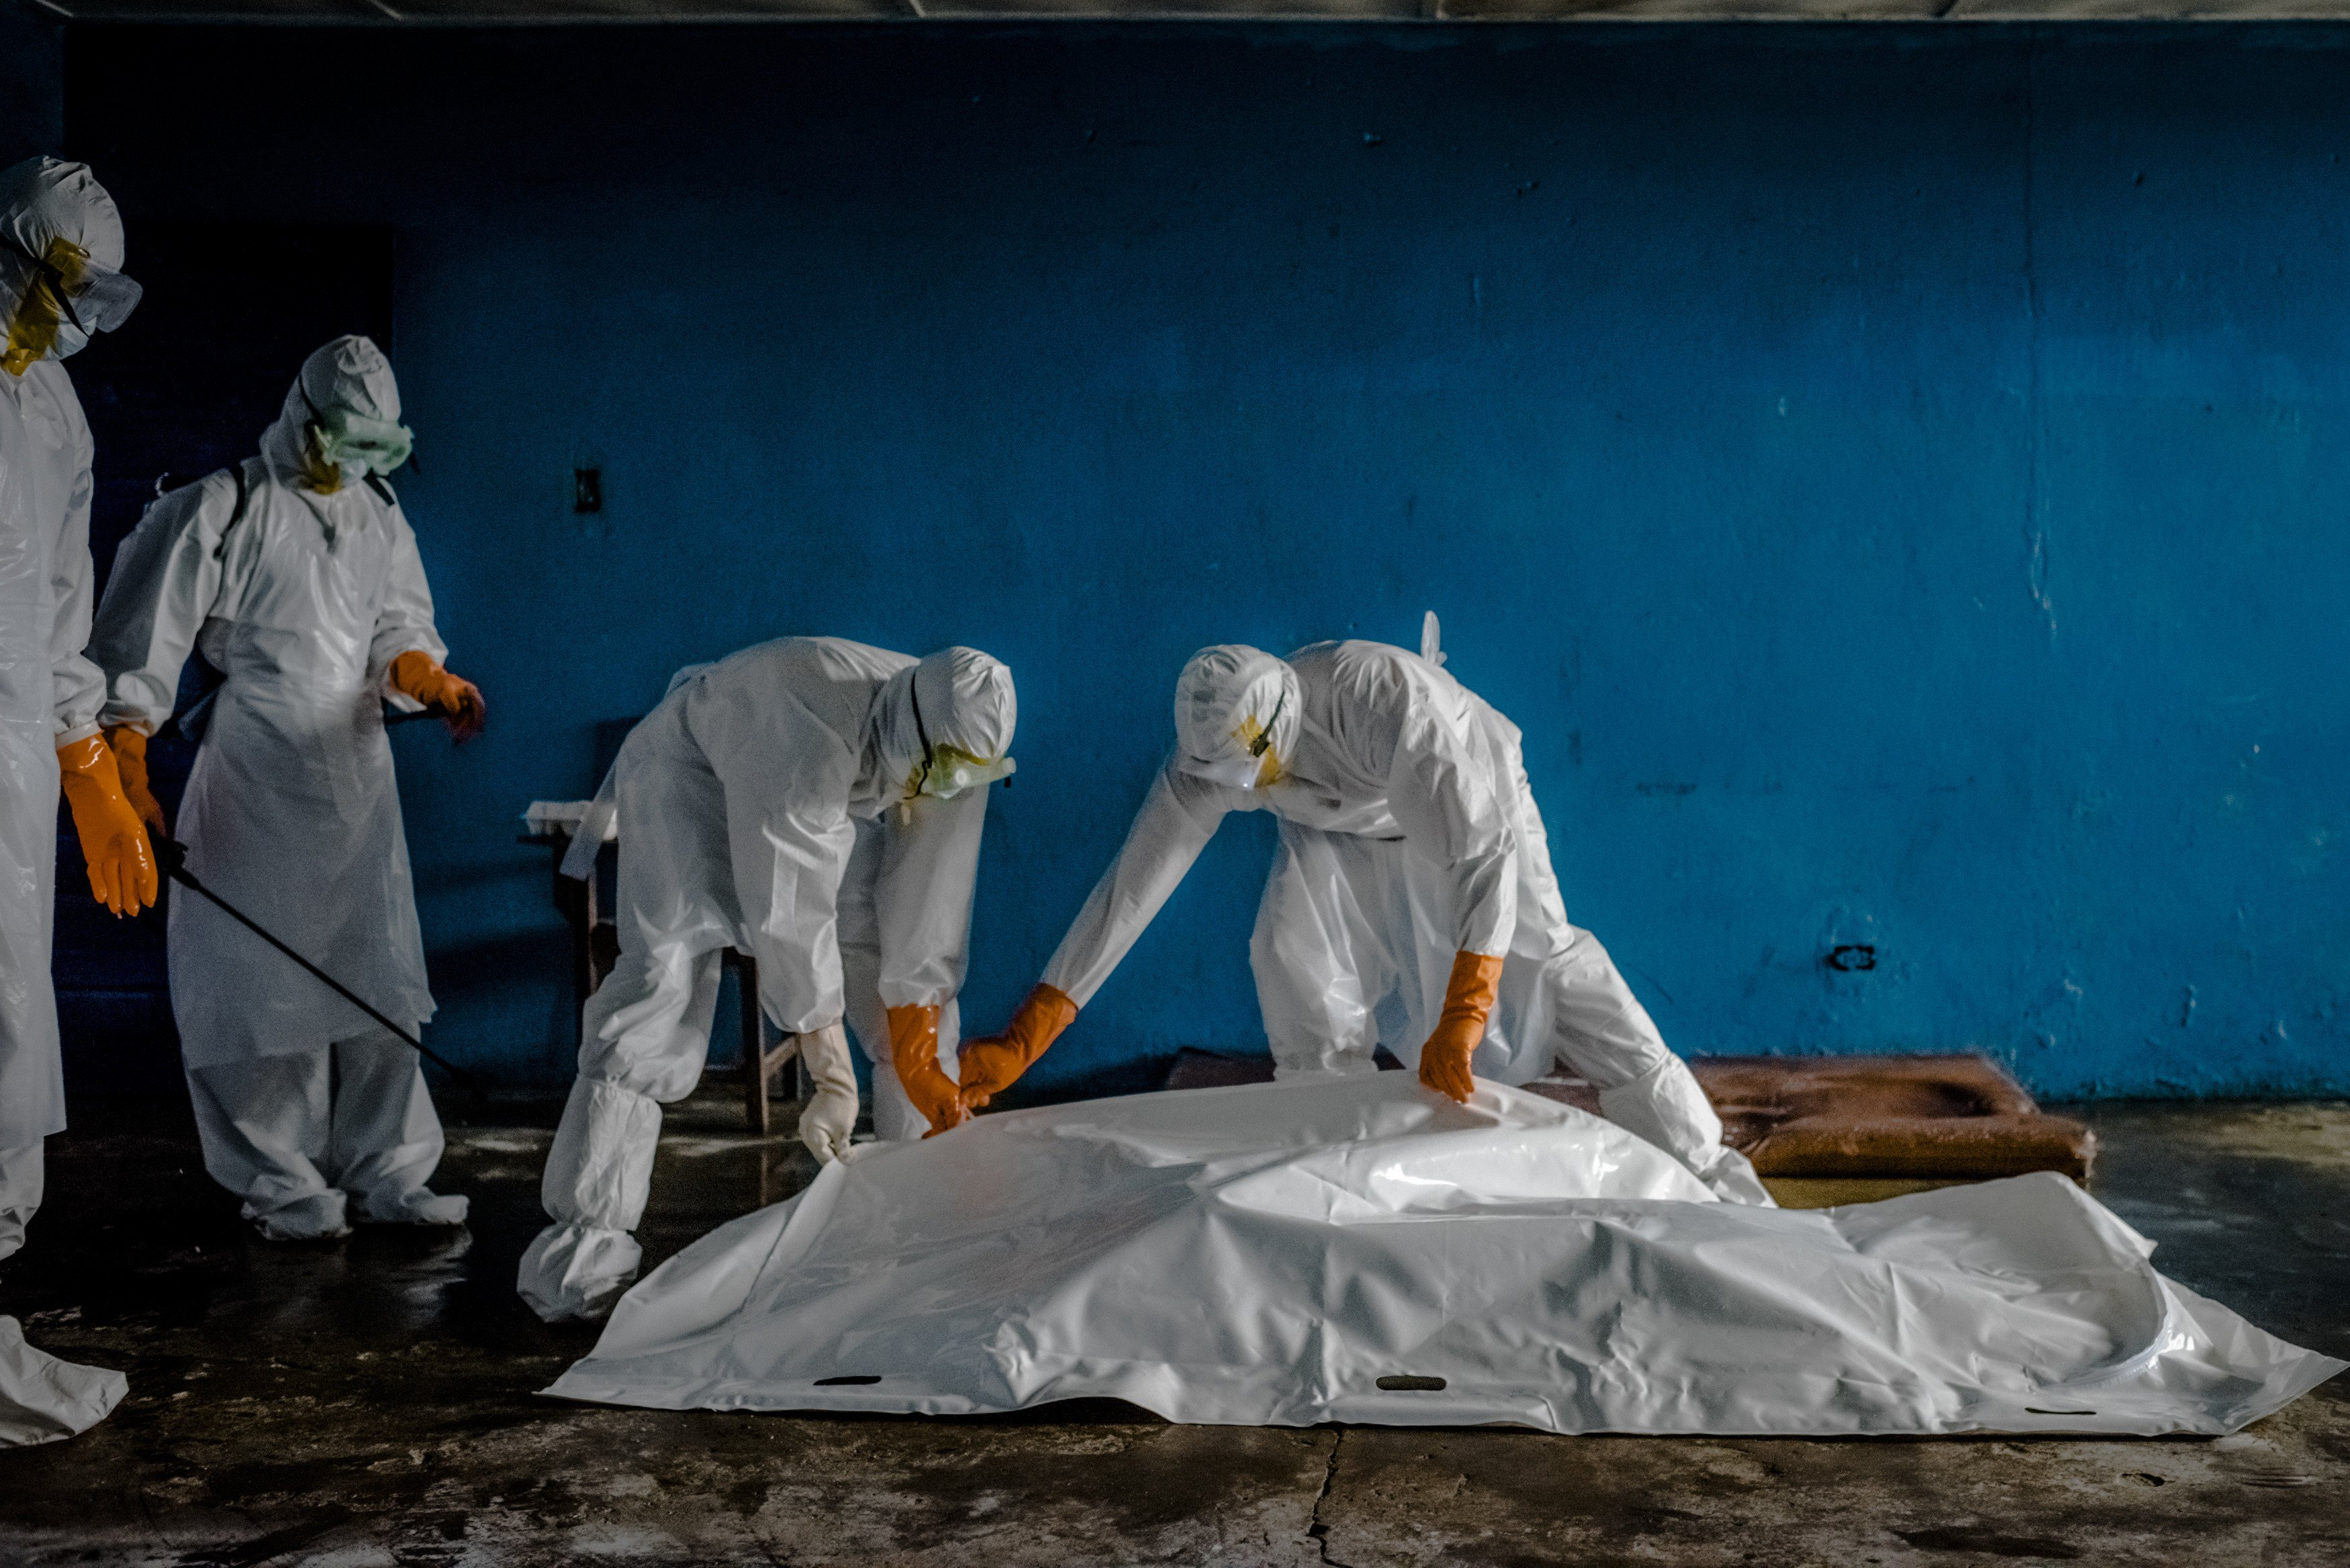 A burial team in protective clothing retrieves the body of an Ebola victim from an isolation ward in the West Point neighborhood of Monrovia, the capital of Liberia, on Aug. 28, 2014